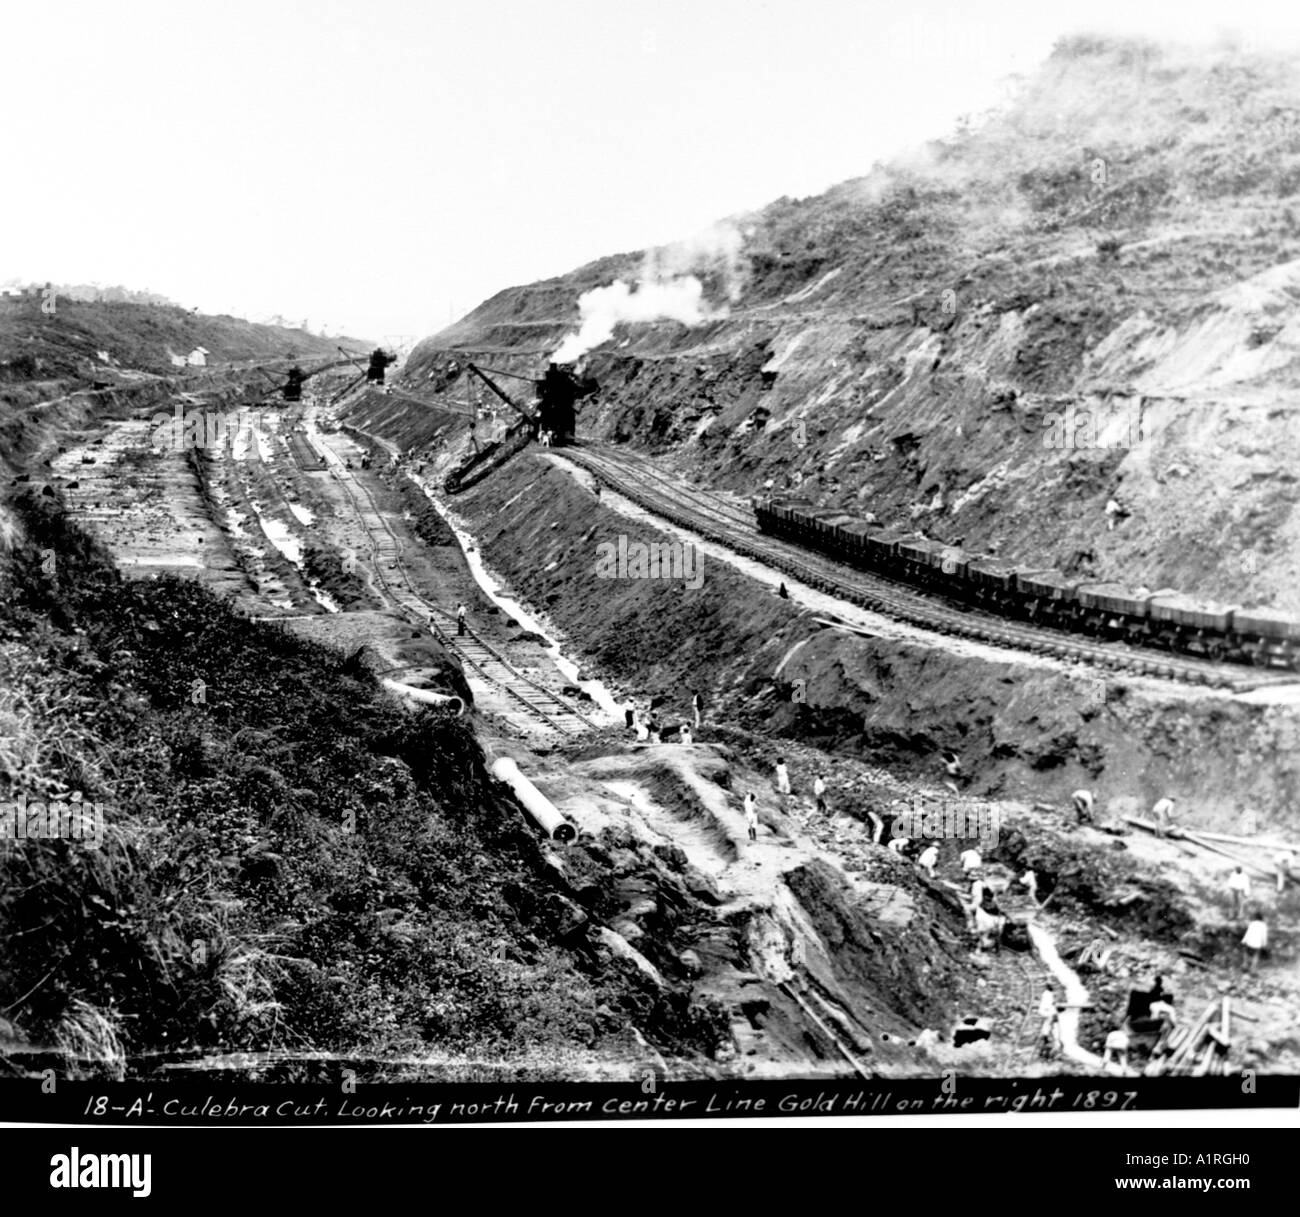 Culebra Cut Looking North from Center Line Gold Hill on the right circa 1897 - Stock Image